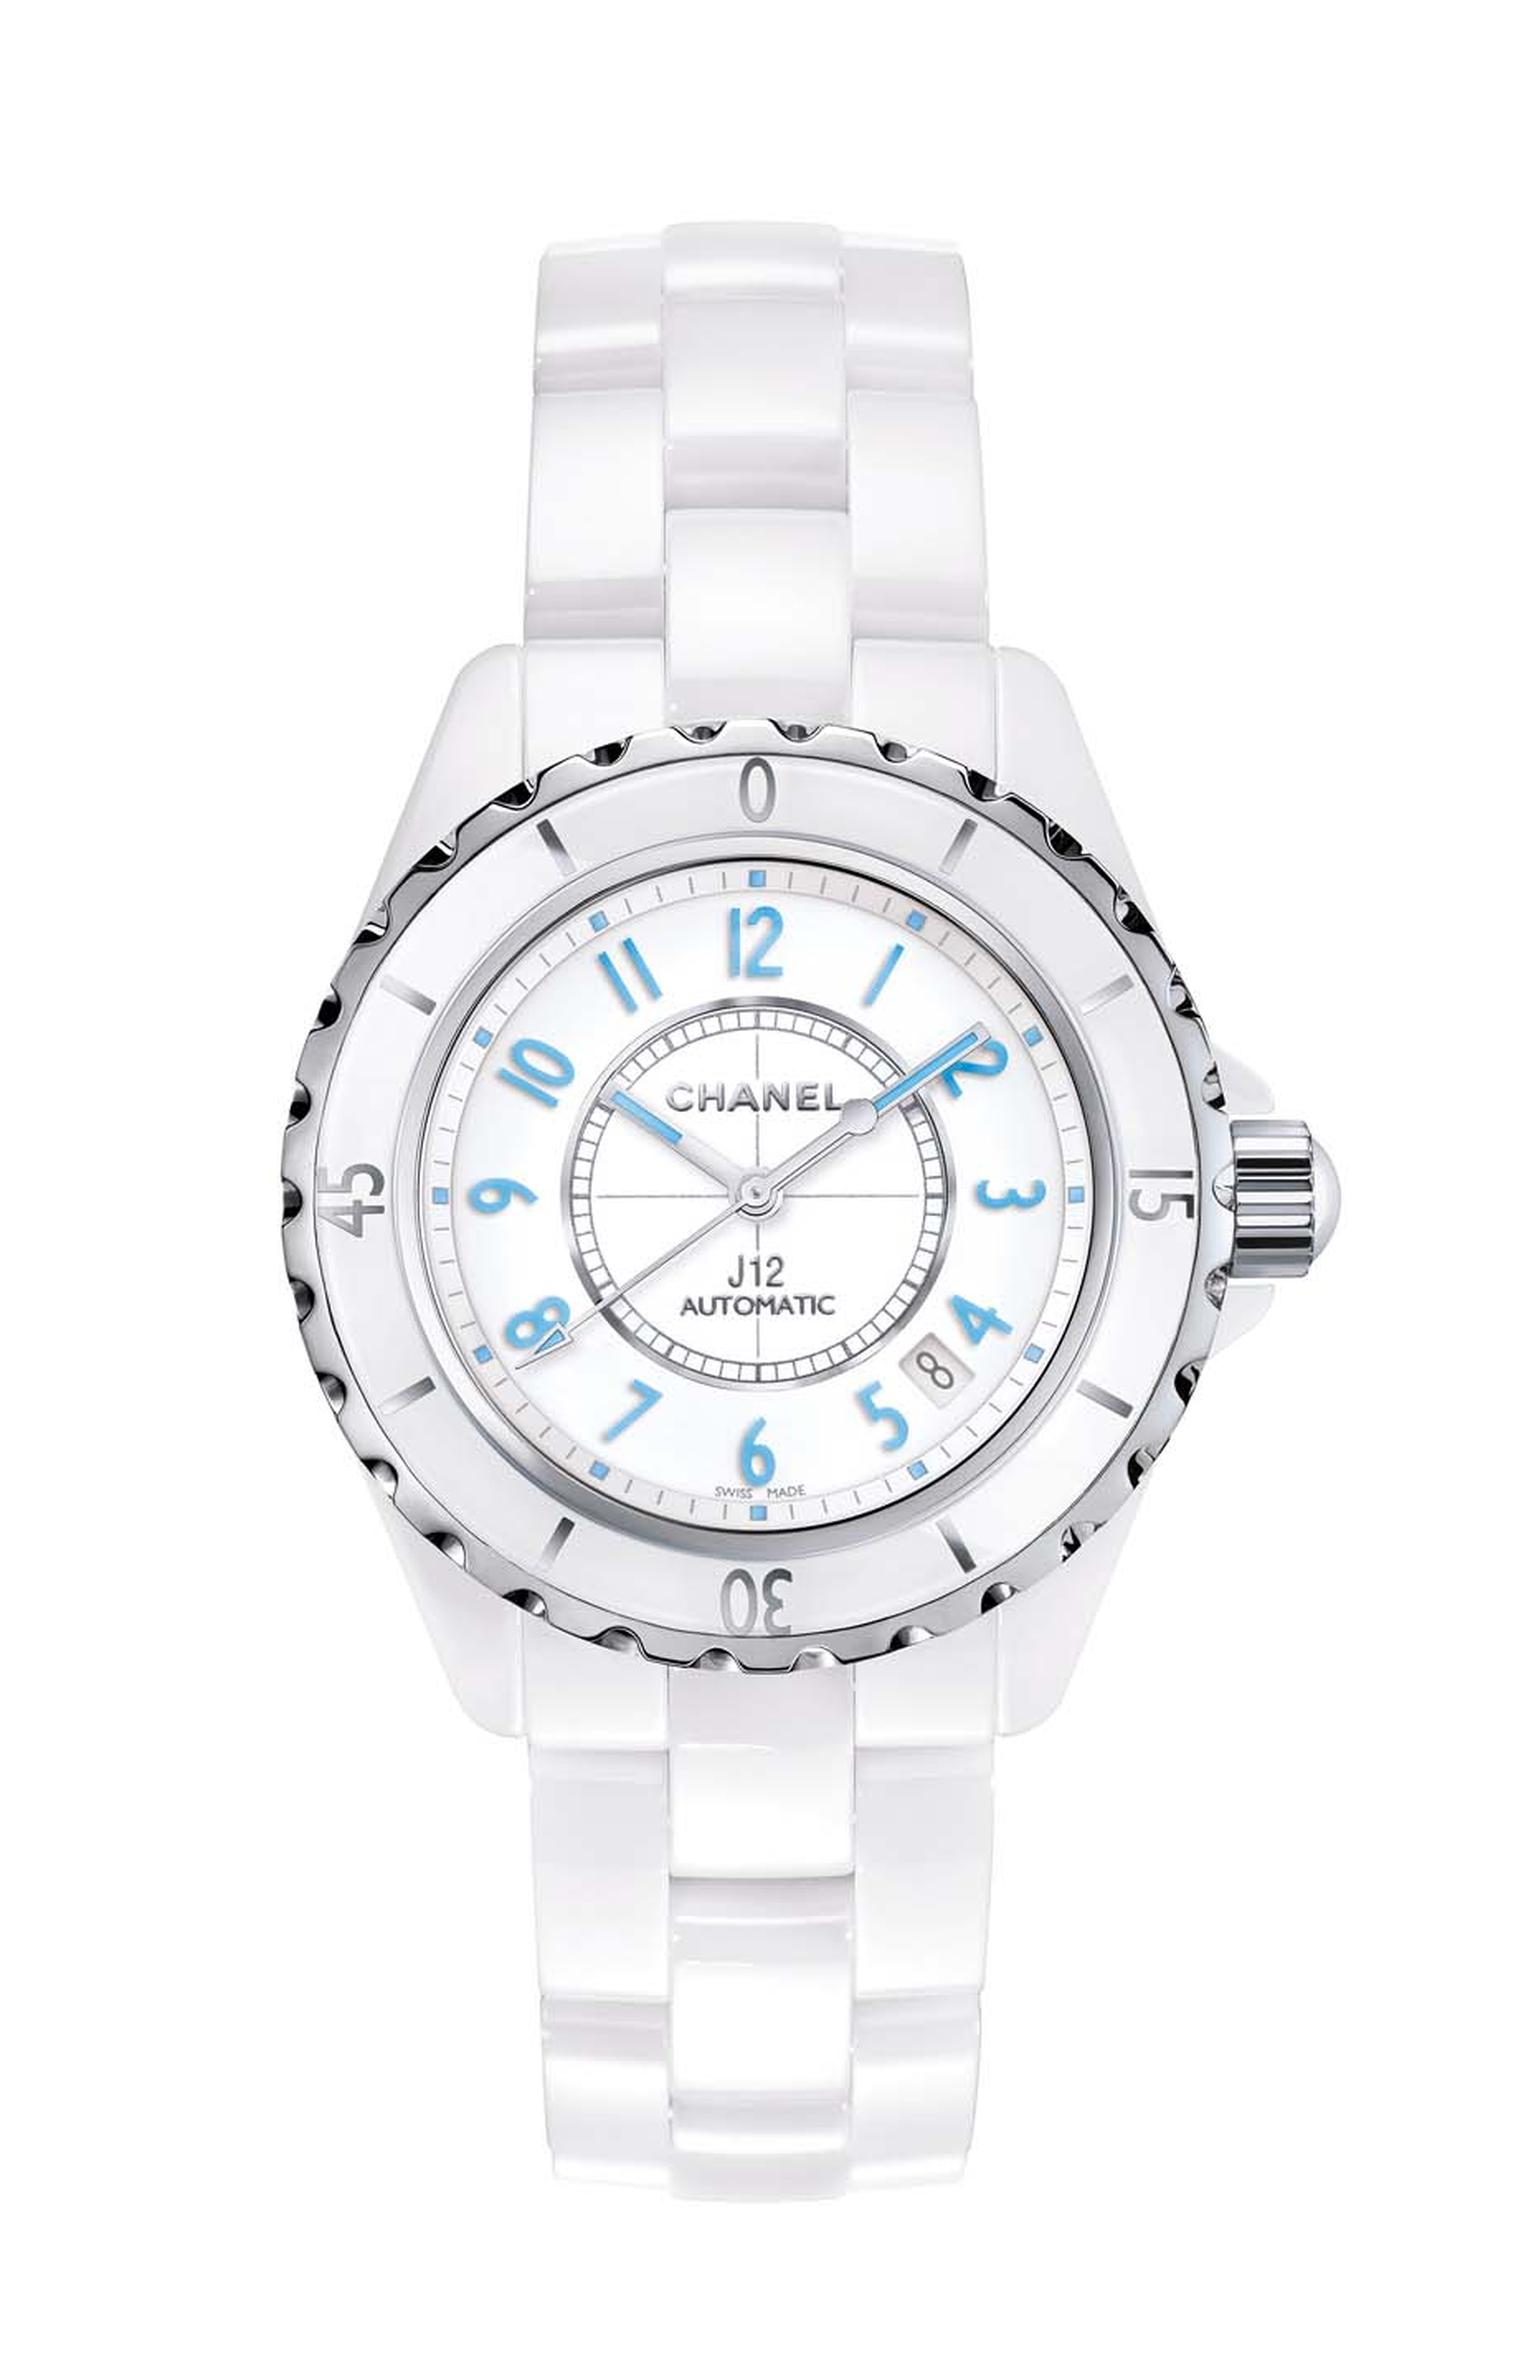 Chanel J12 Blue Light featuring a white ceramic and powder blue dial and automatic movement.